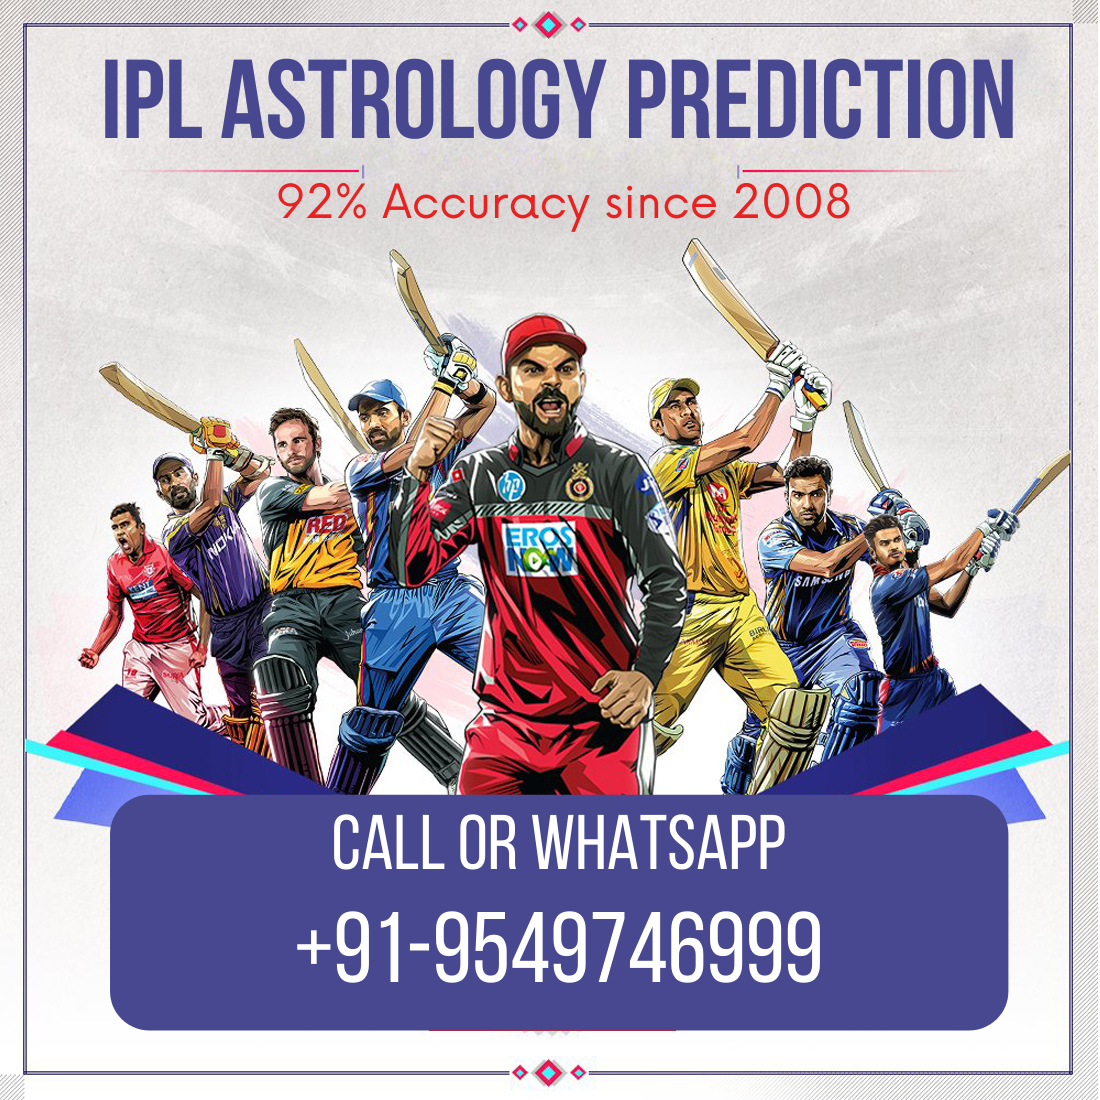 IPL 2021 ASTROLOGY PREDICTIONS BY ASTROLOGER